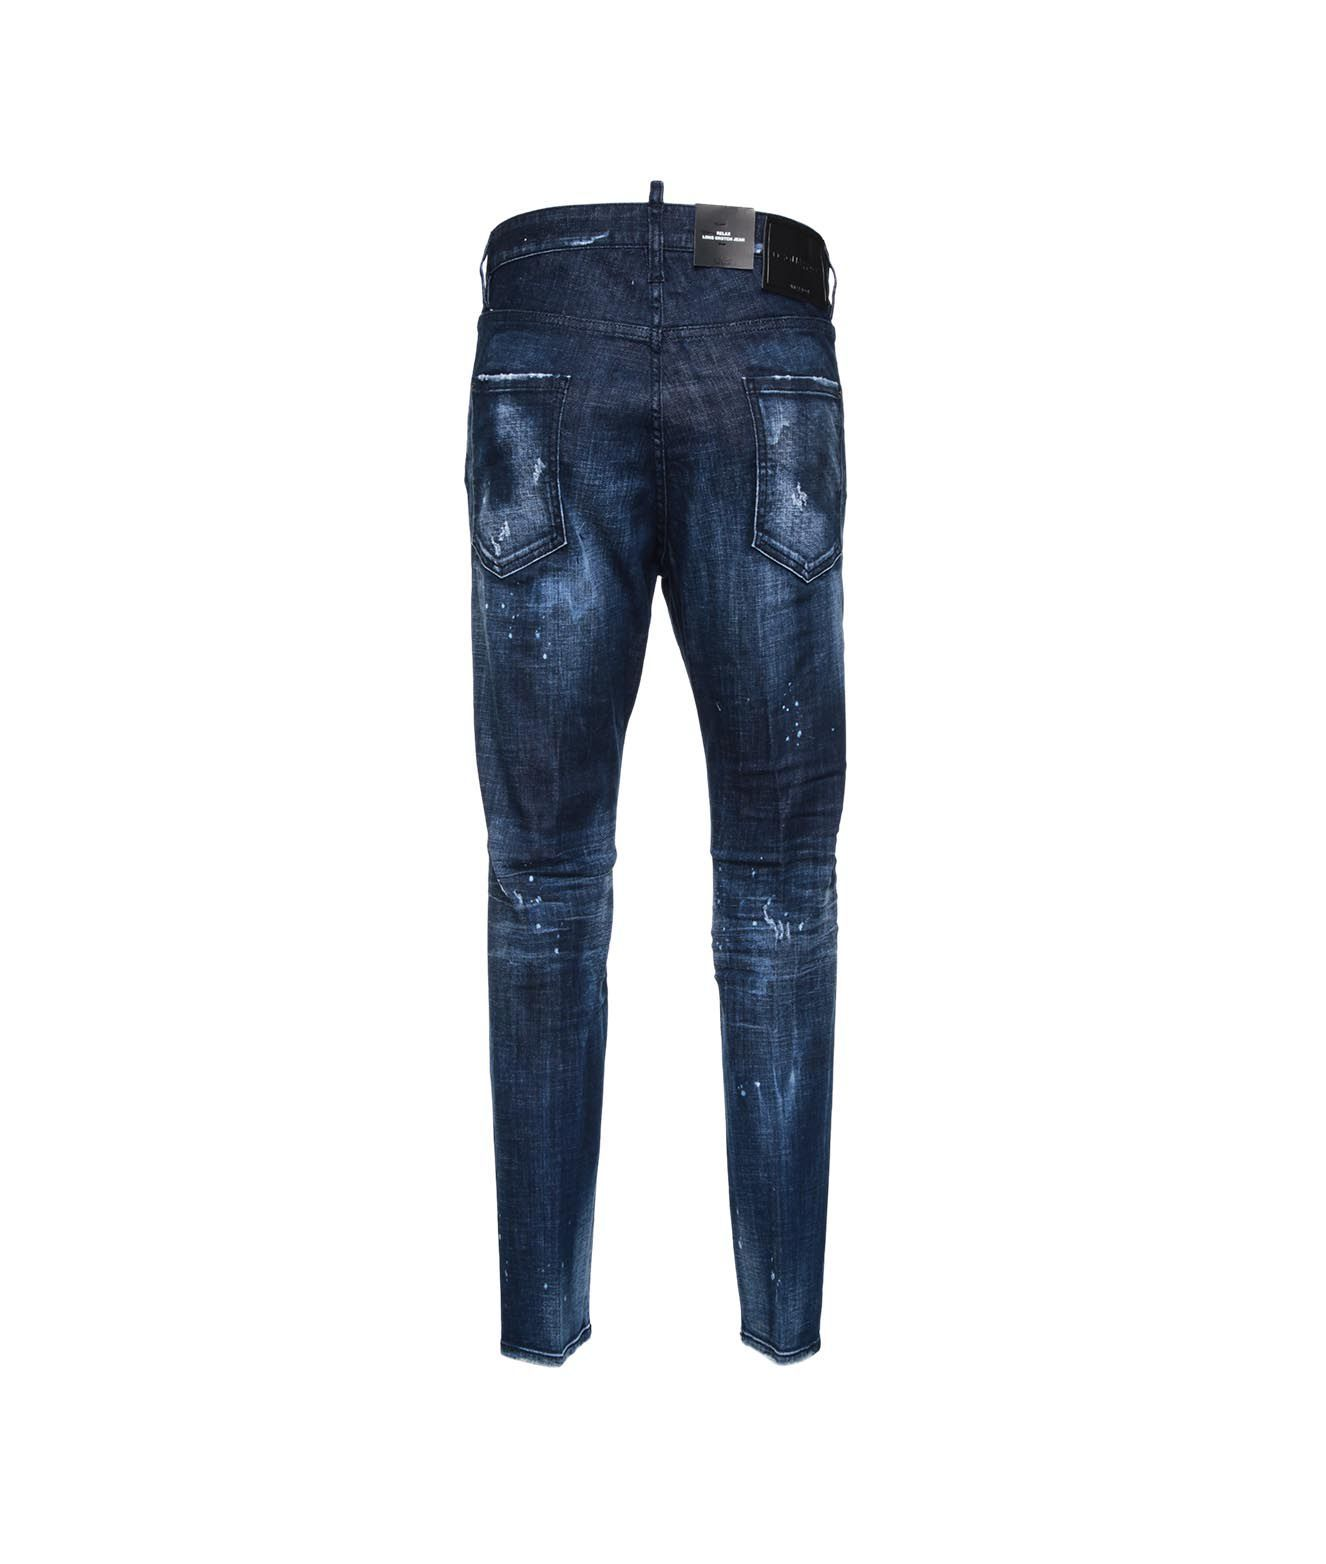 DSQUARED2 Jeans DSQUARED2 MEN'S BLUE OTHER MATERIALS JEANS